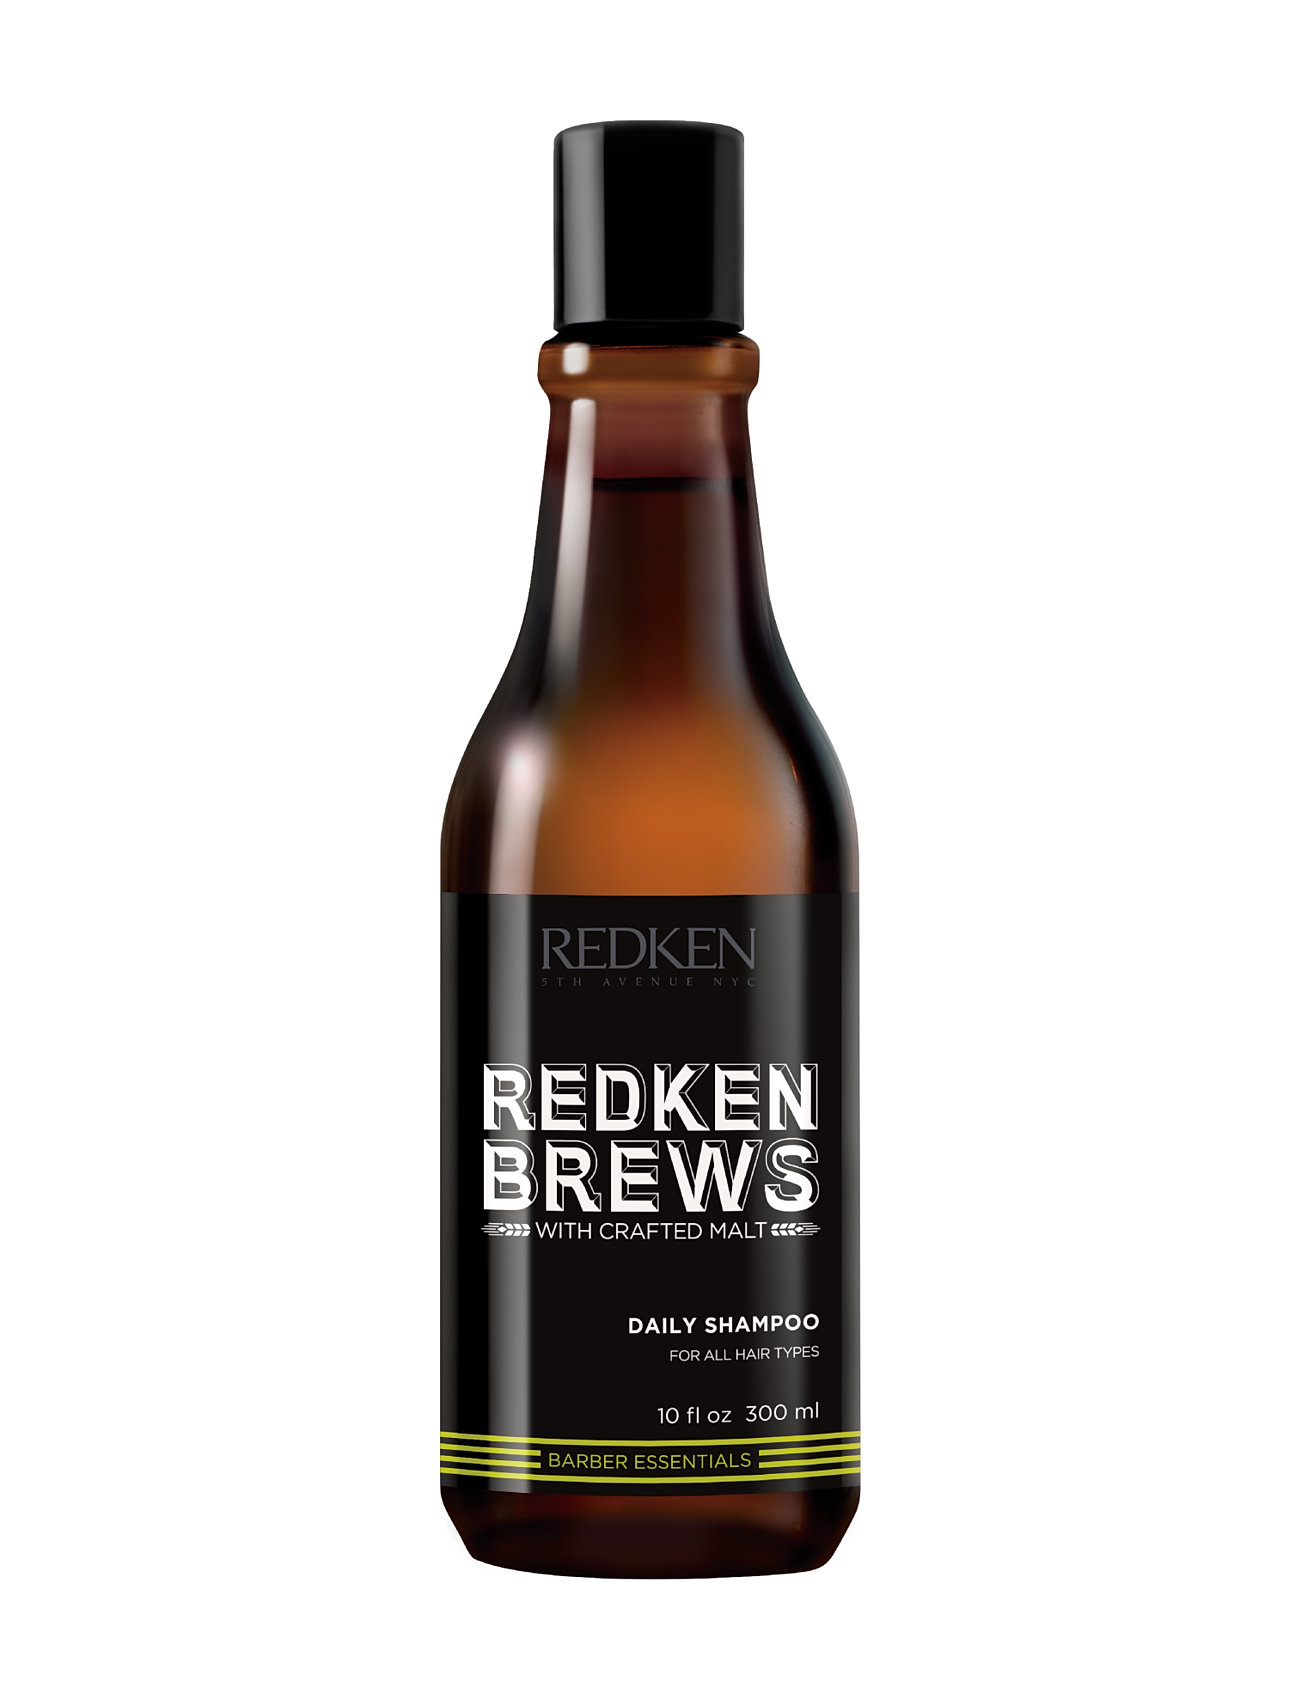 Redken Brews Daily Shampoo - CLEAR